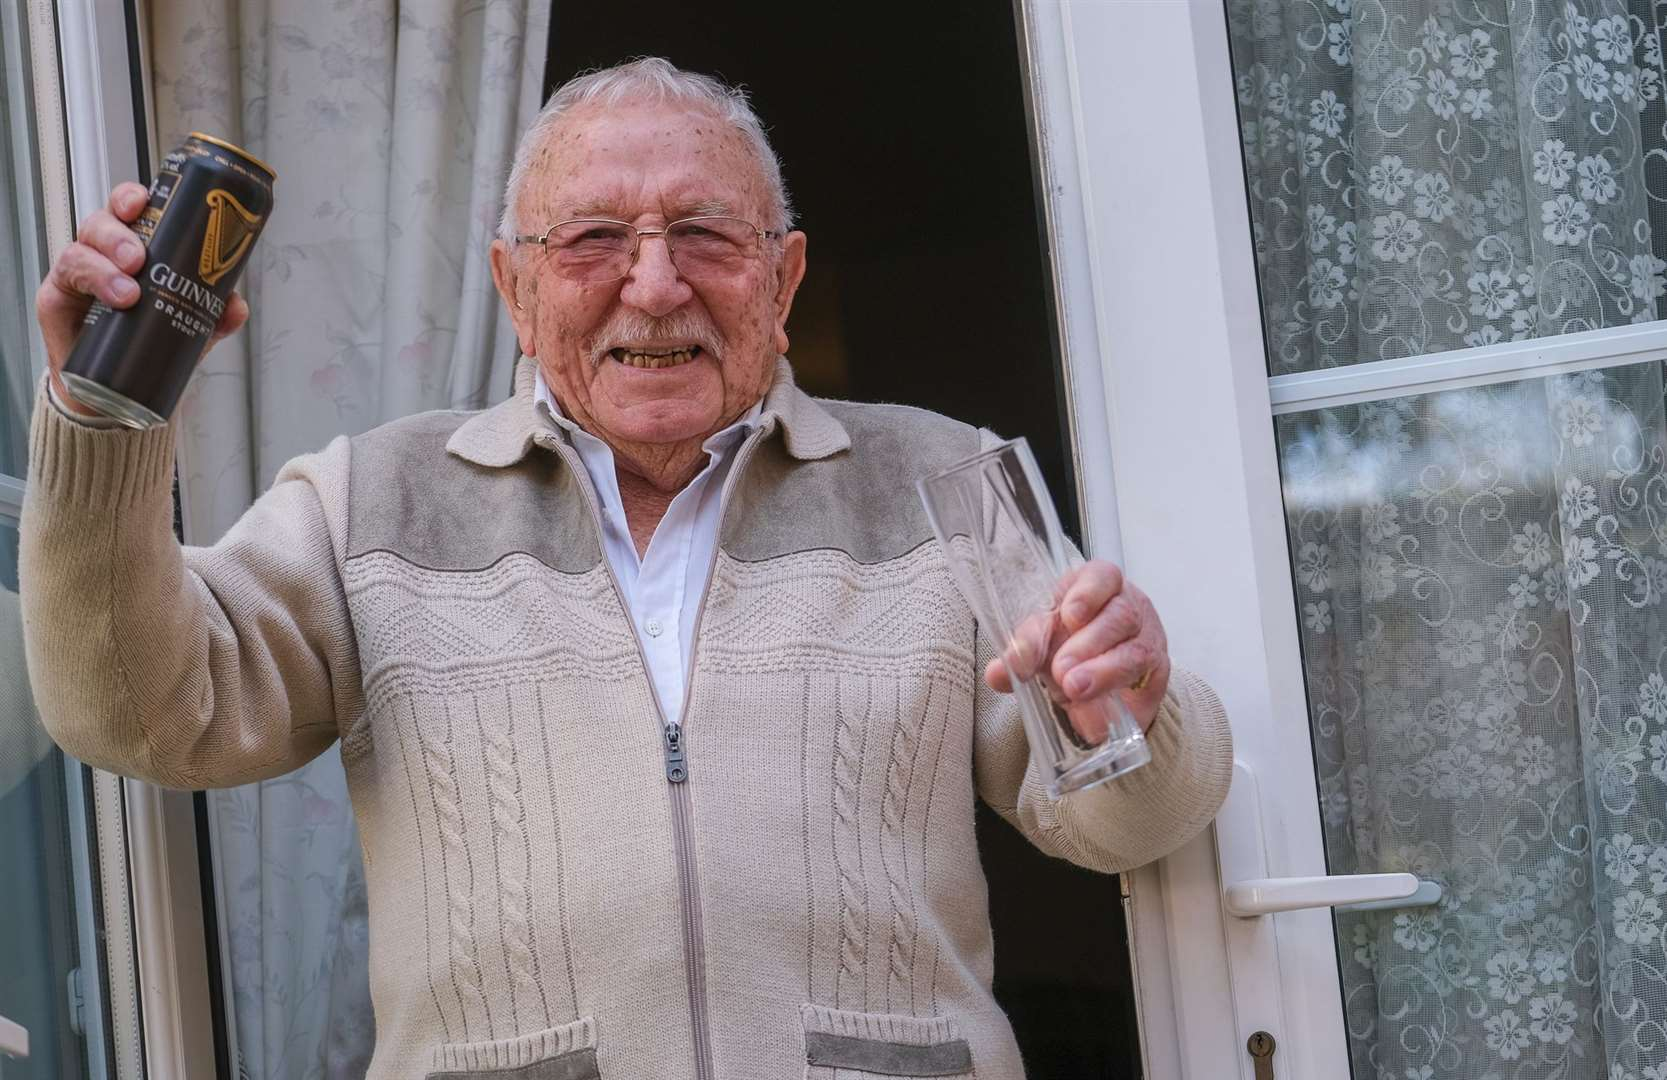 John Quince celebrates turning 100 years old - his secret to a long life is a Guinness a day. Picture Phil Cannings